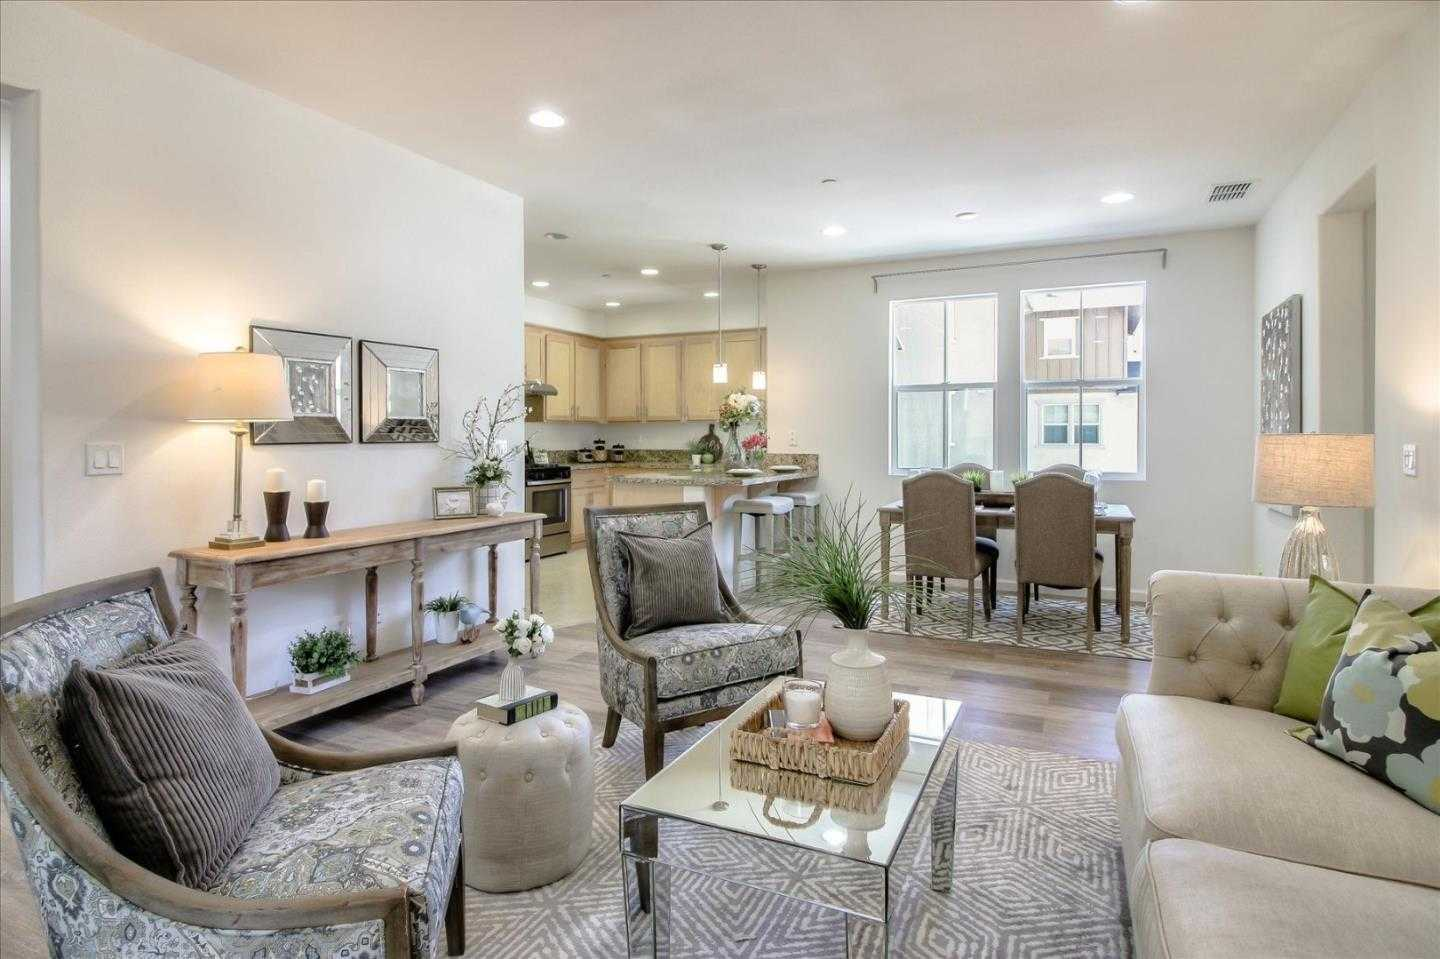 $1,099,000 - 3Br/2Ba -  for Sale in Milpitas